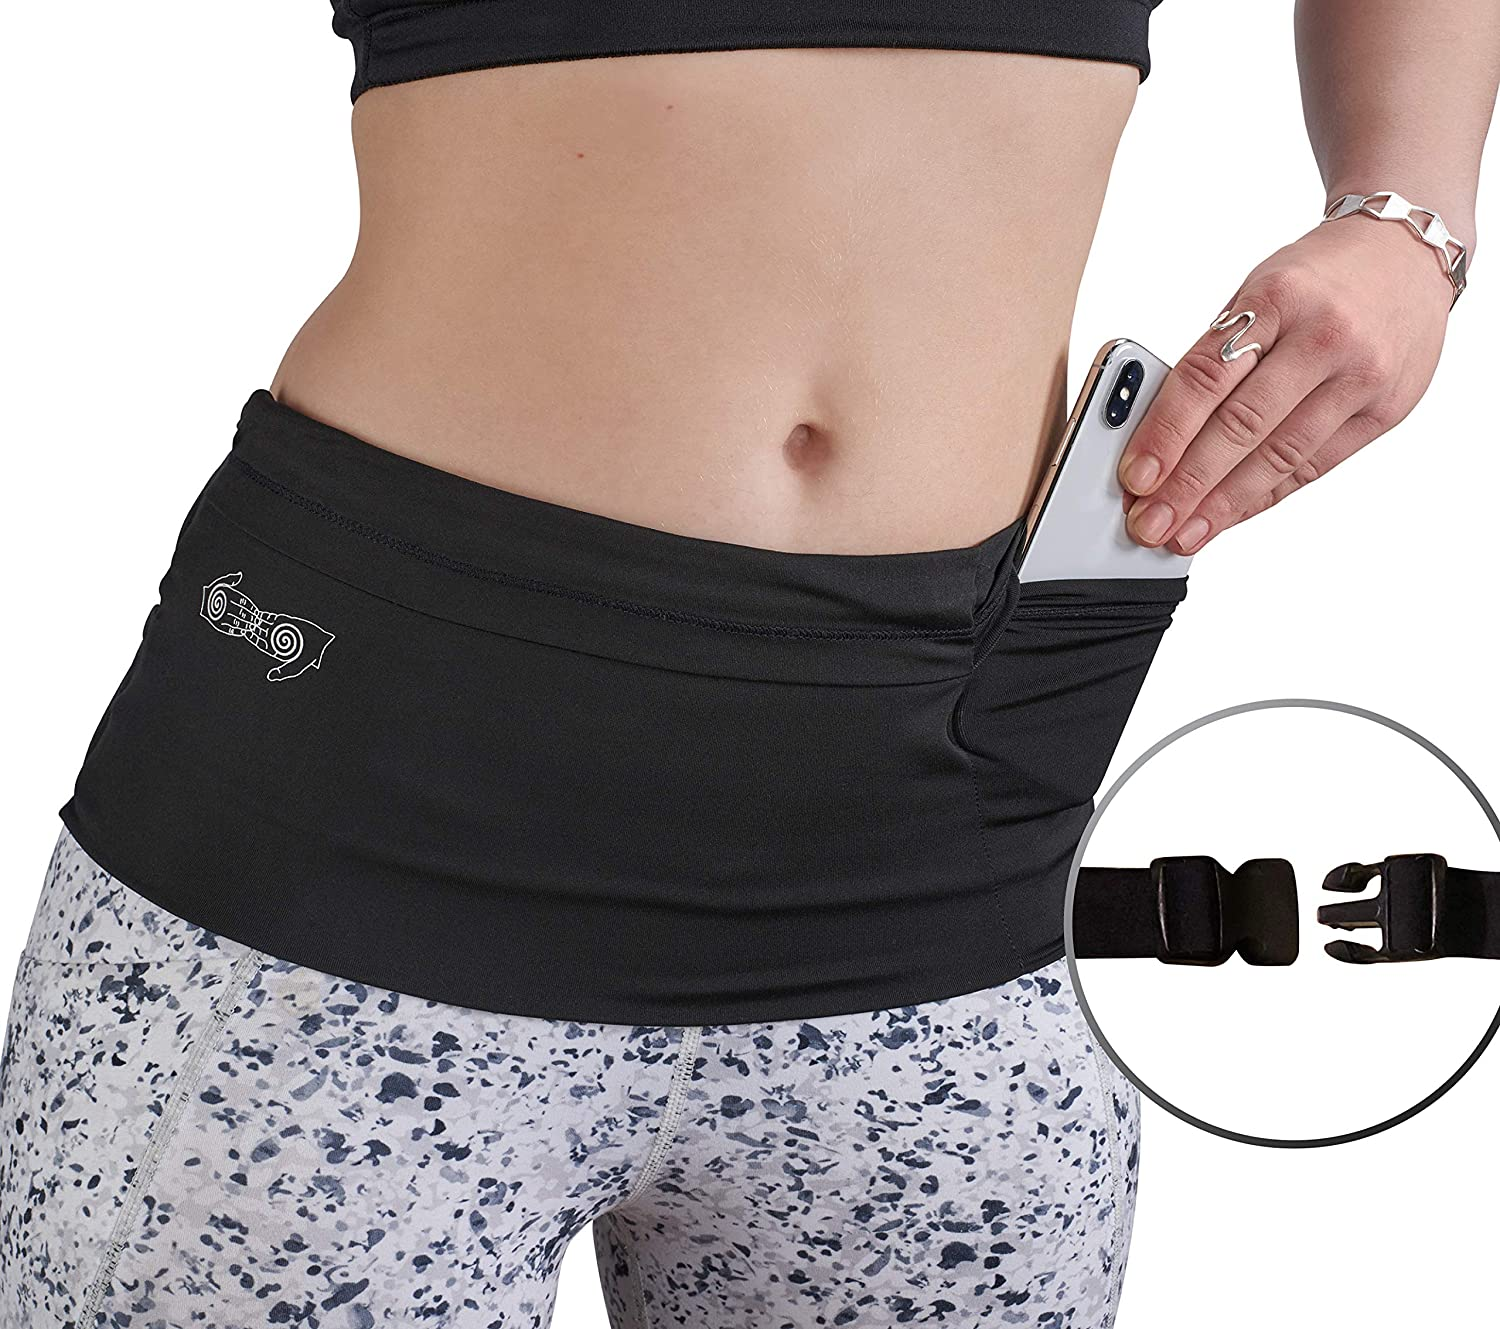 BBuddyWear Slim Fit Wide ADJUSTABLE Running Belt – Stretchy Spandex Waist and Fanny Pack Money Belt with Buckle Closure for Travel or Exercise – Fits All Smart Phones Cases Passport Insulin Pumps etc